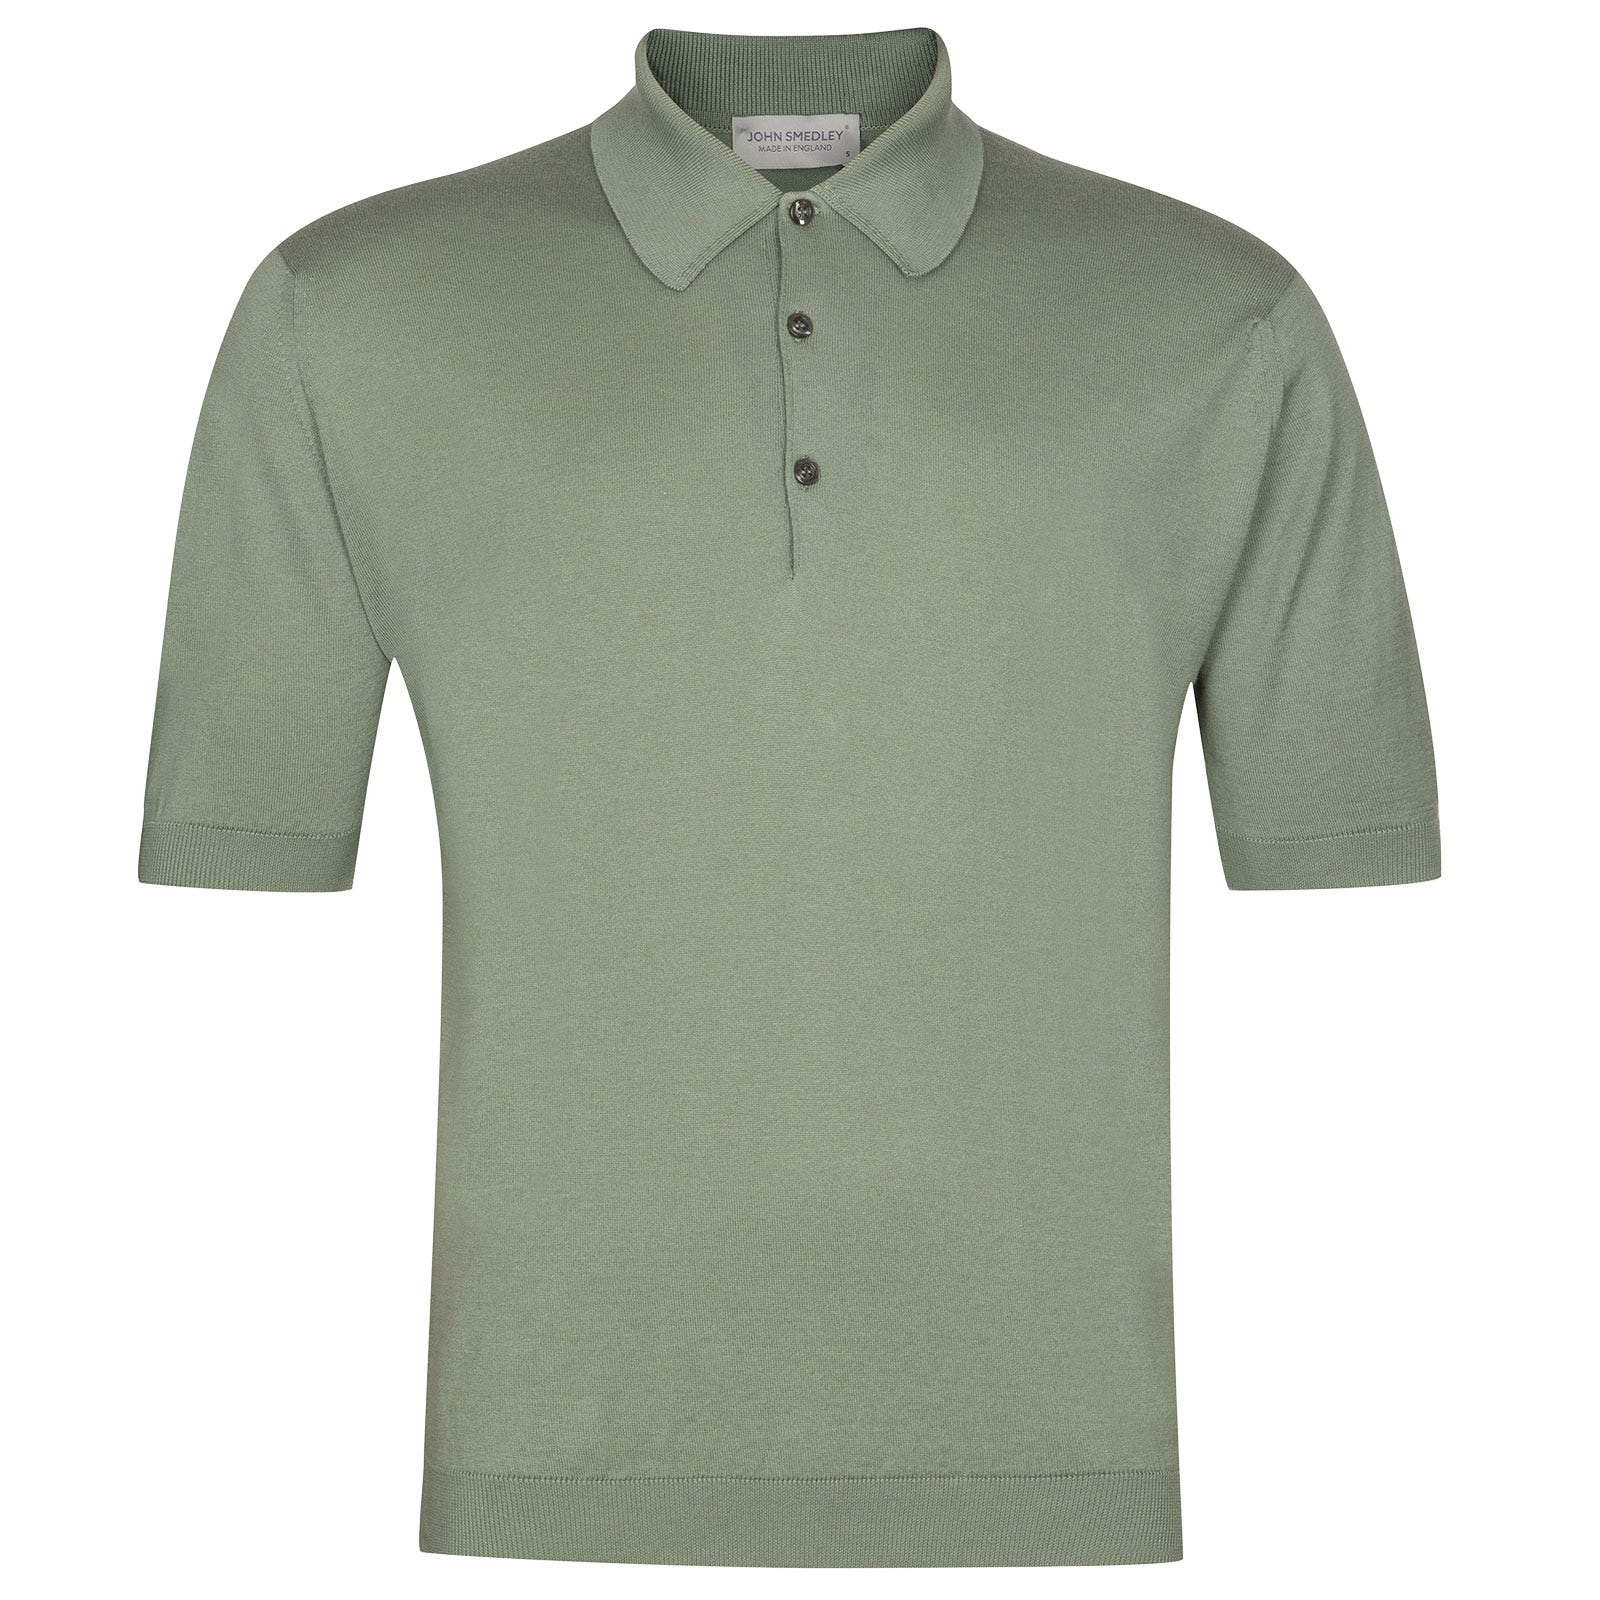 John Smedley Isis Sea Island Cotton Shirt in Gauge Green-M